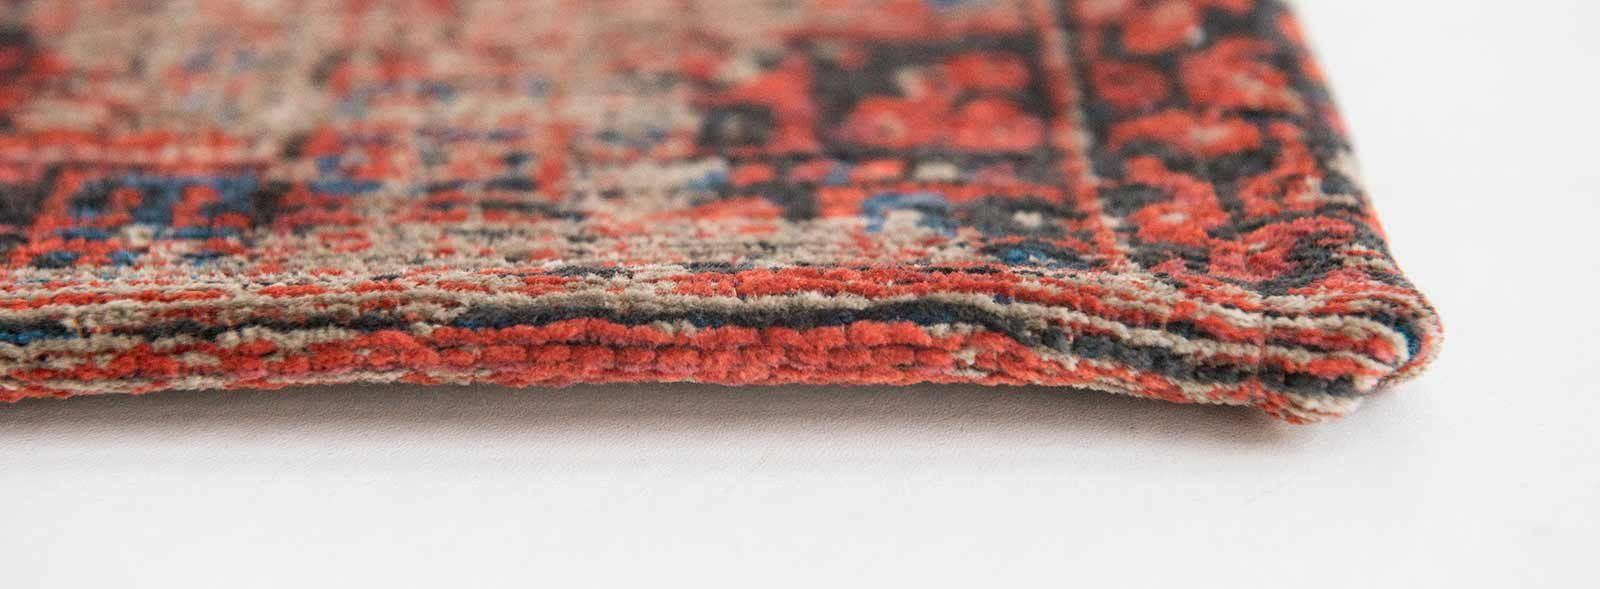 tapis Louis De Poortere LX8719 Antiquarian Antique Hadschlu 782 Red side